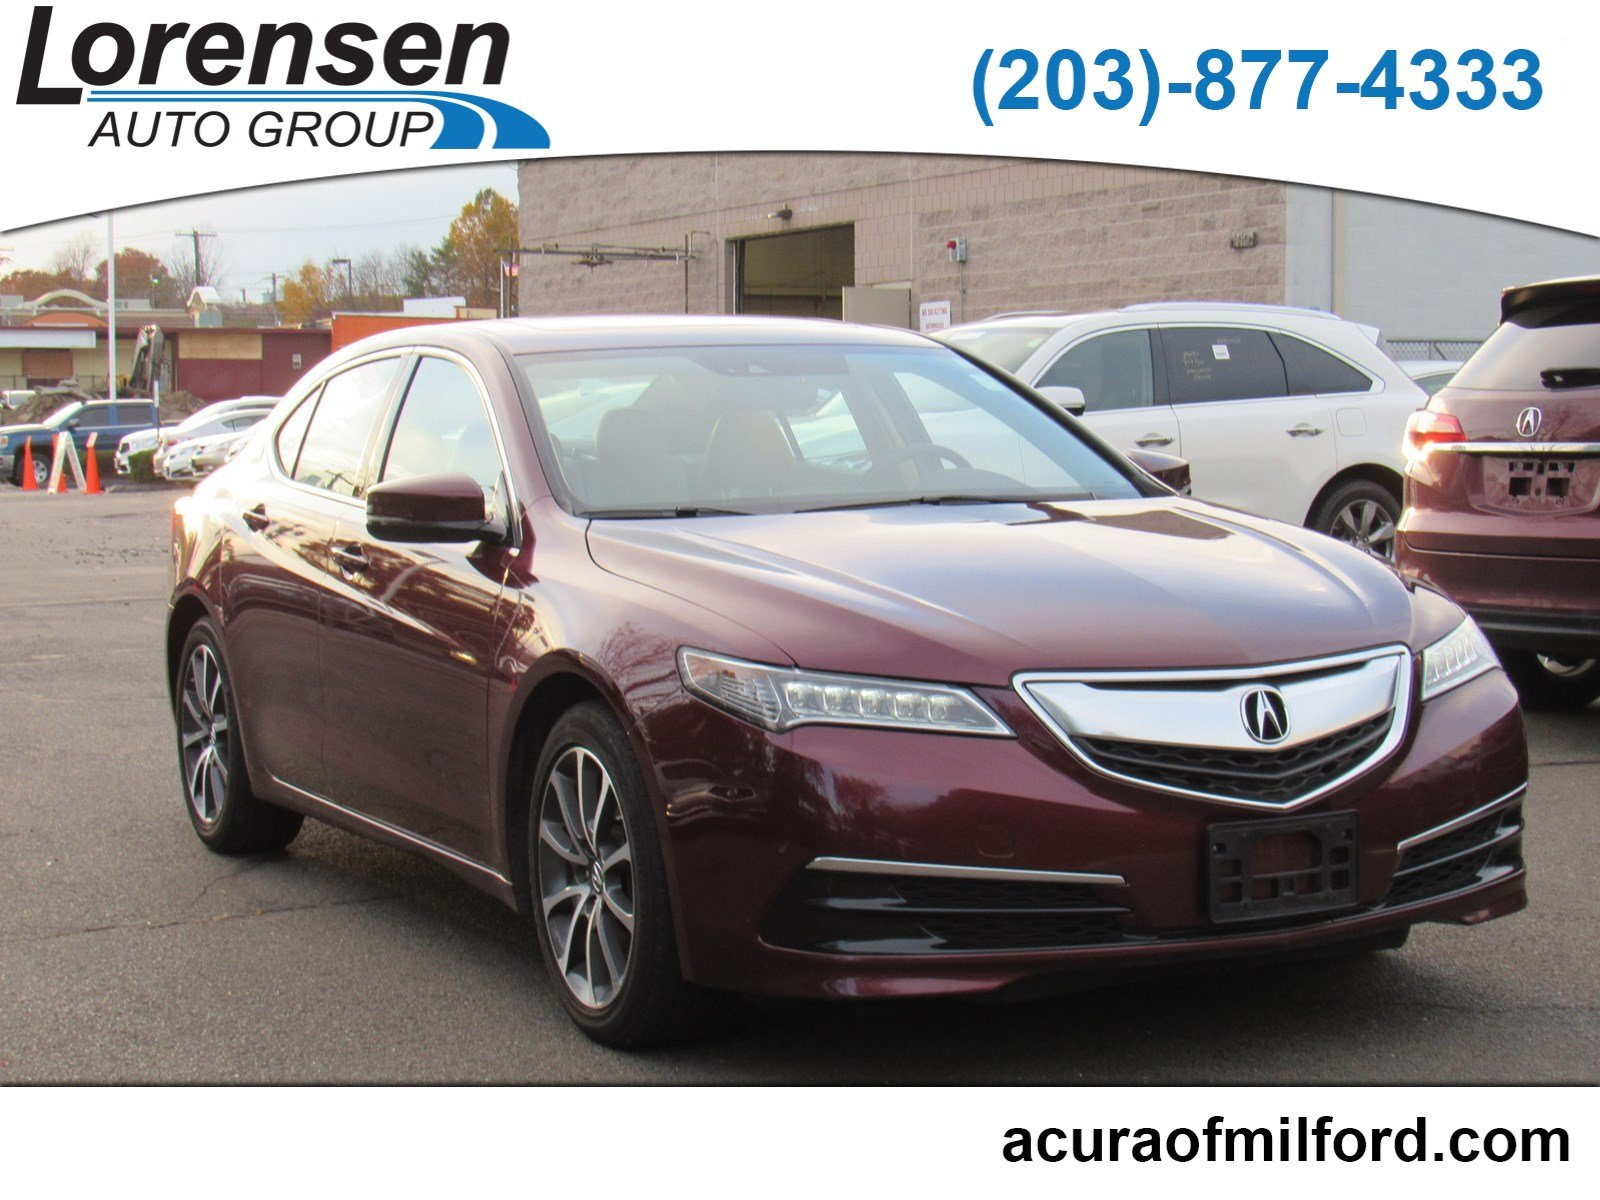 Certified Pre Owned 2016 Acura TLX V6 Tech 4dr Car in Watertown